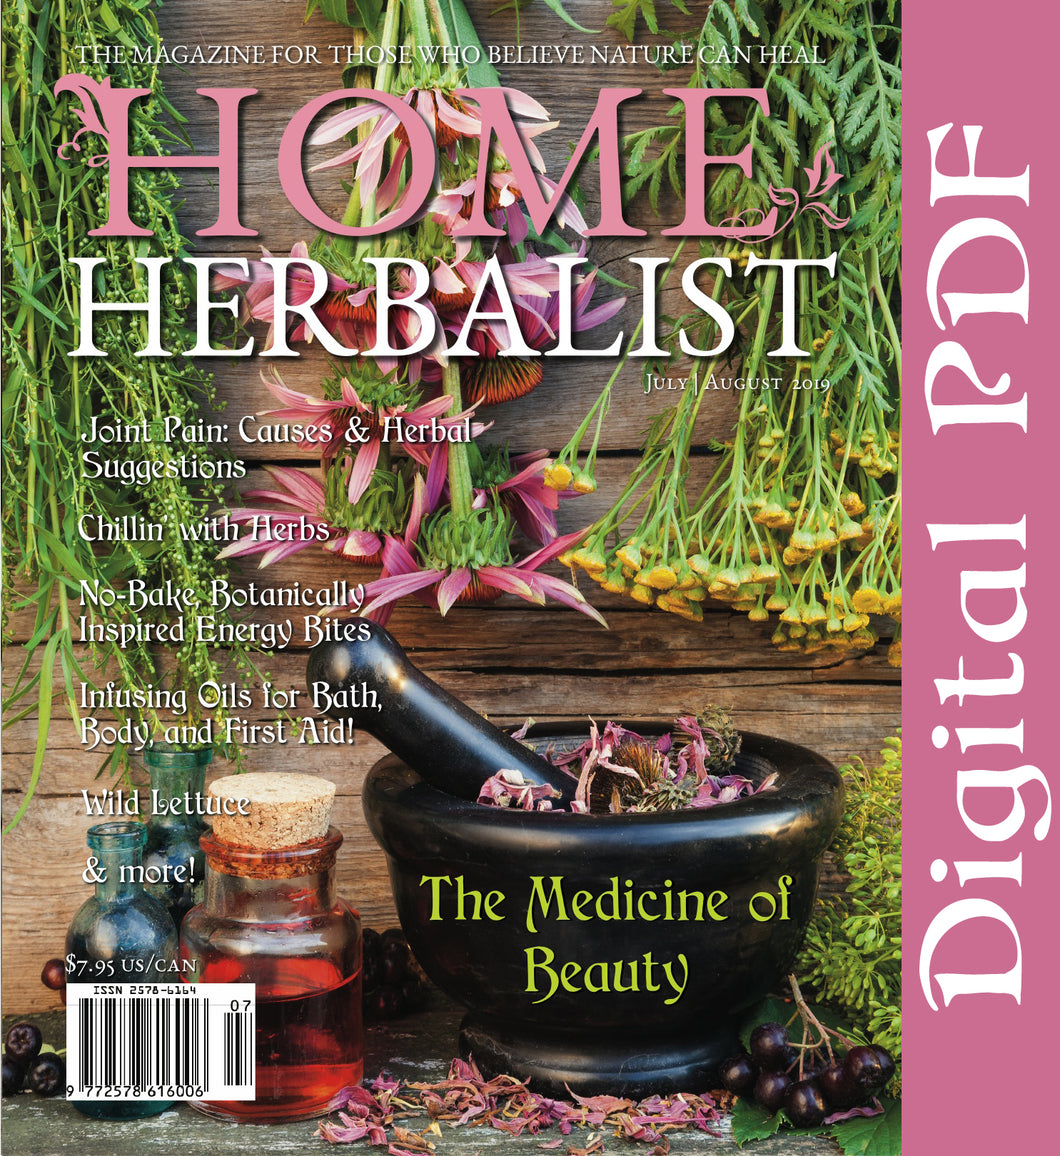 Issue #007 The Medicine of Beauty